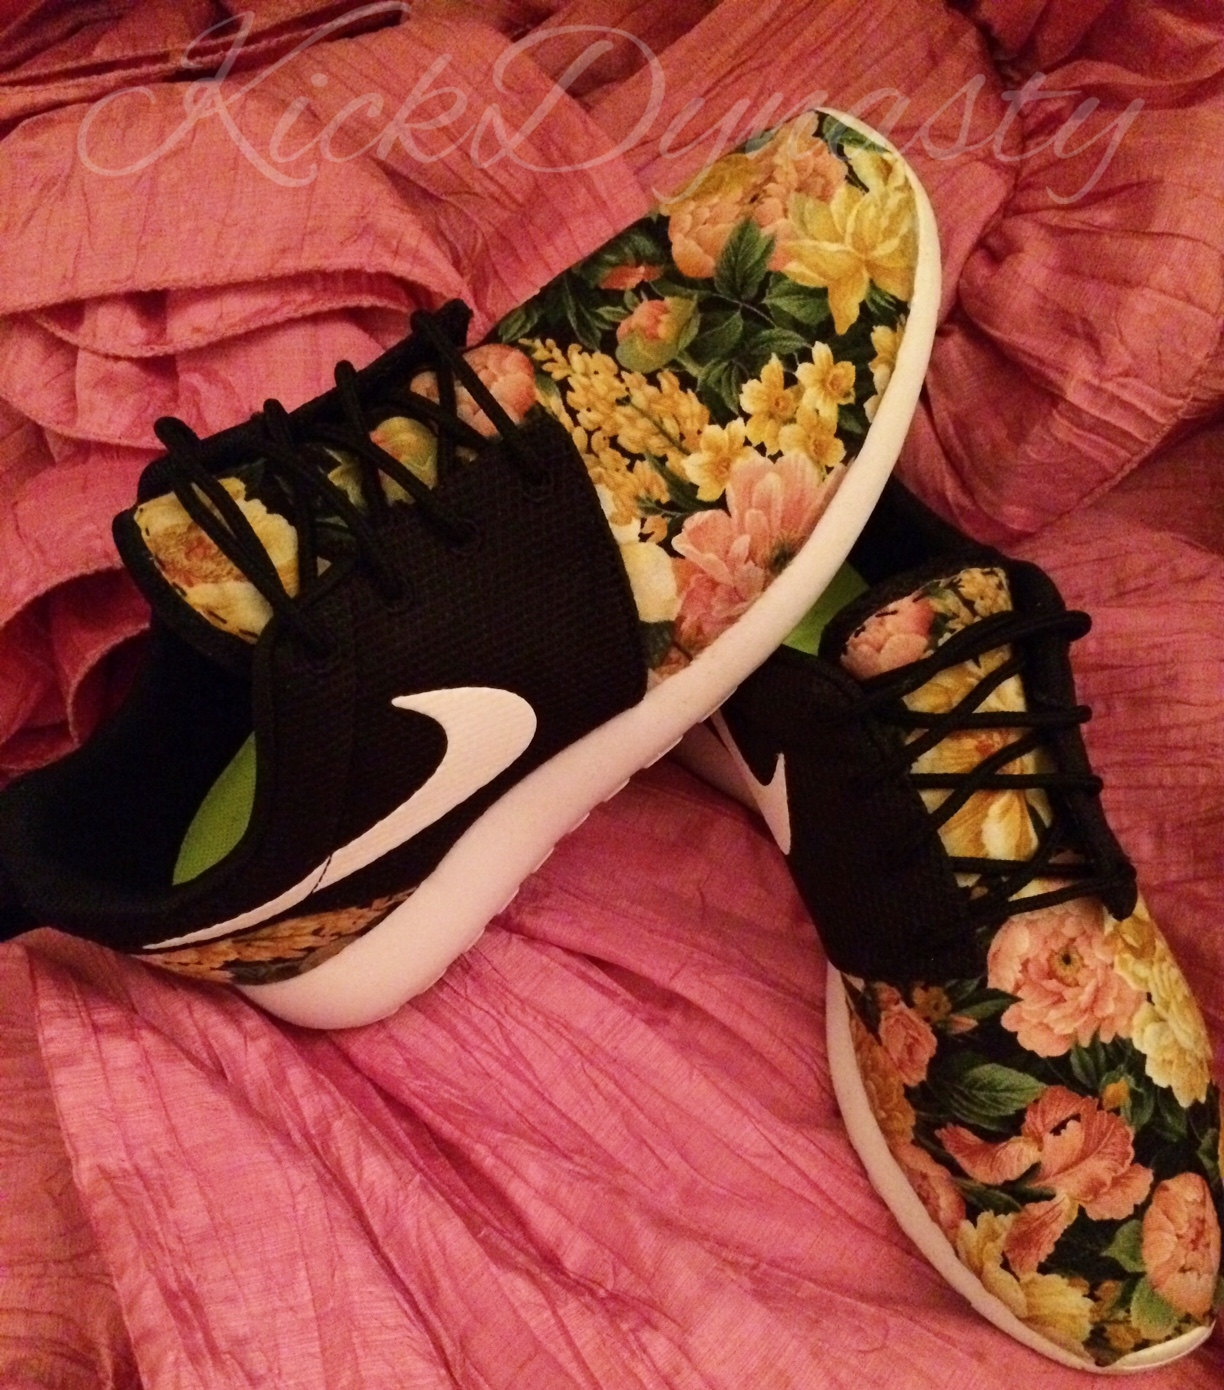 bf4f63d61797 ... best price shoes nike sneakers floral burgundy nike roshe run floral  print shoes maroon floral roshes